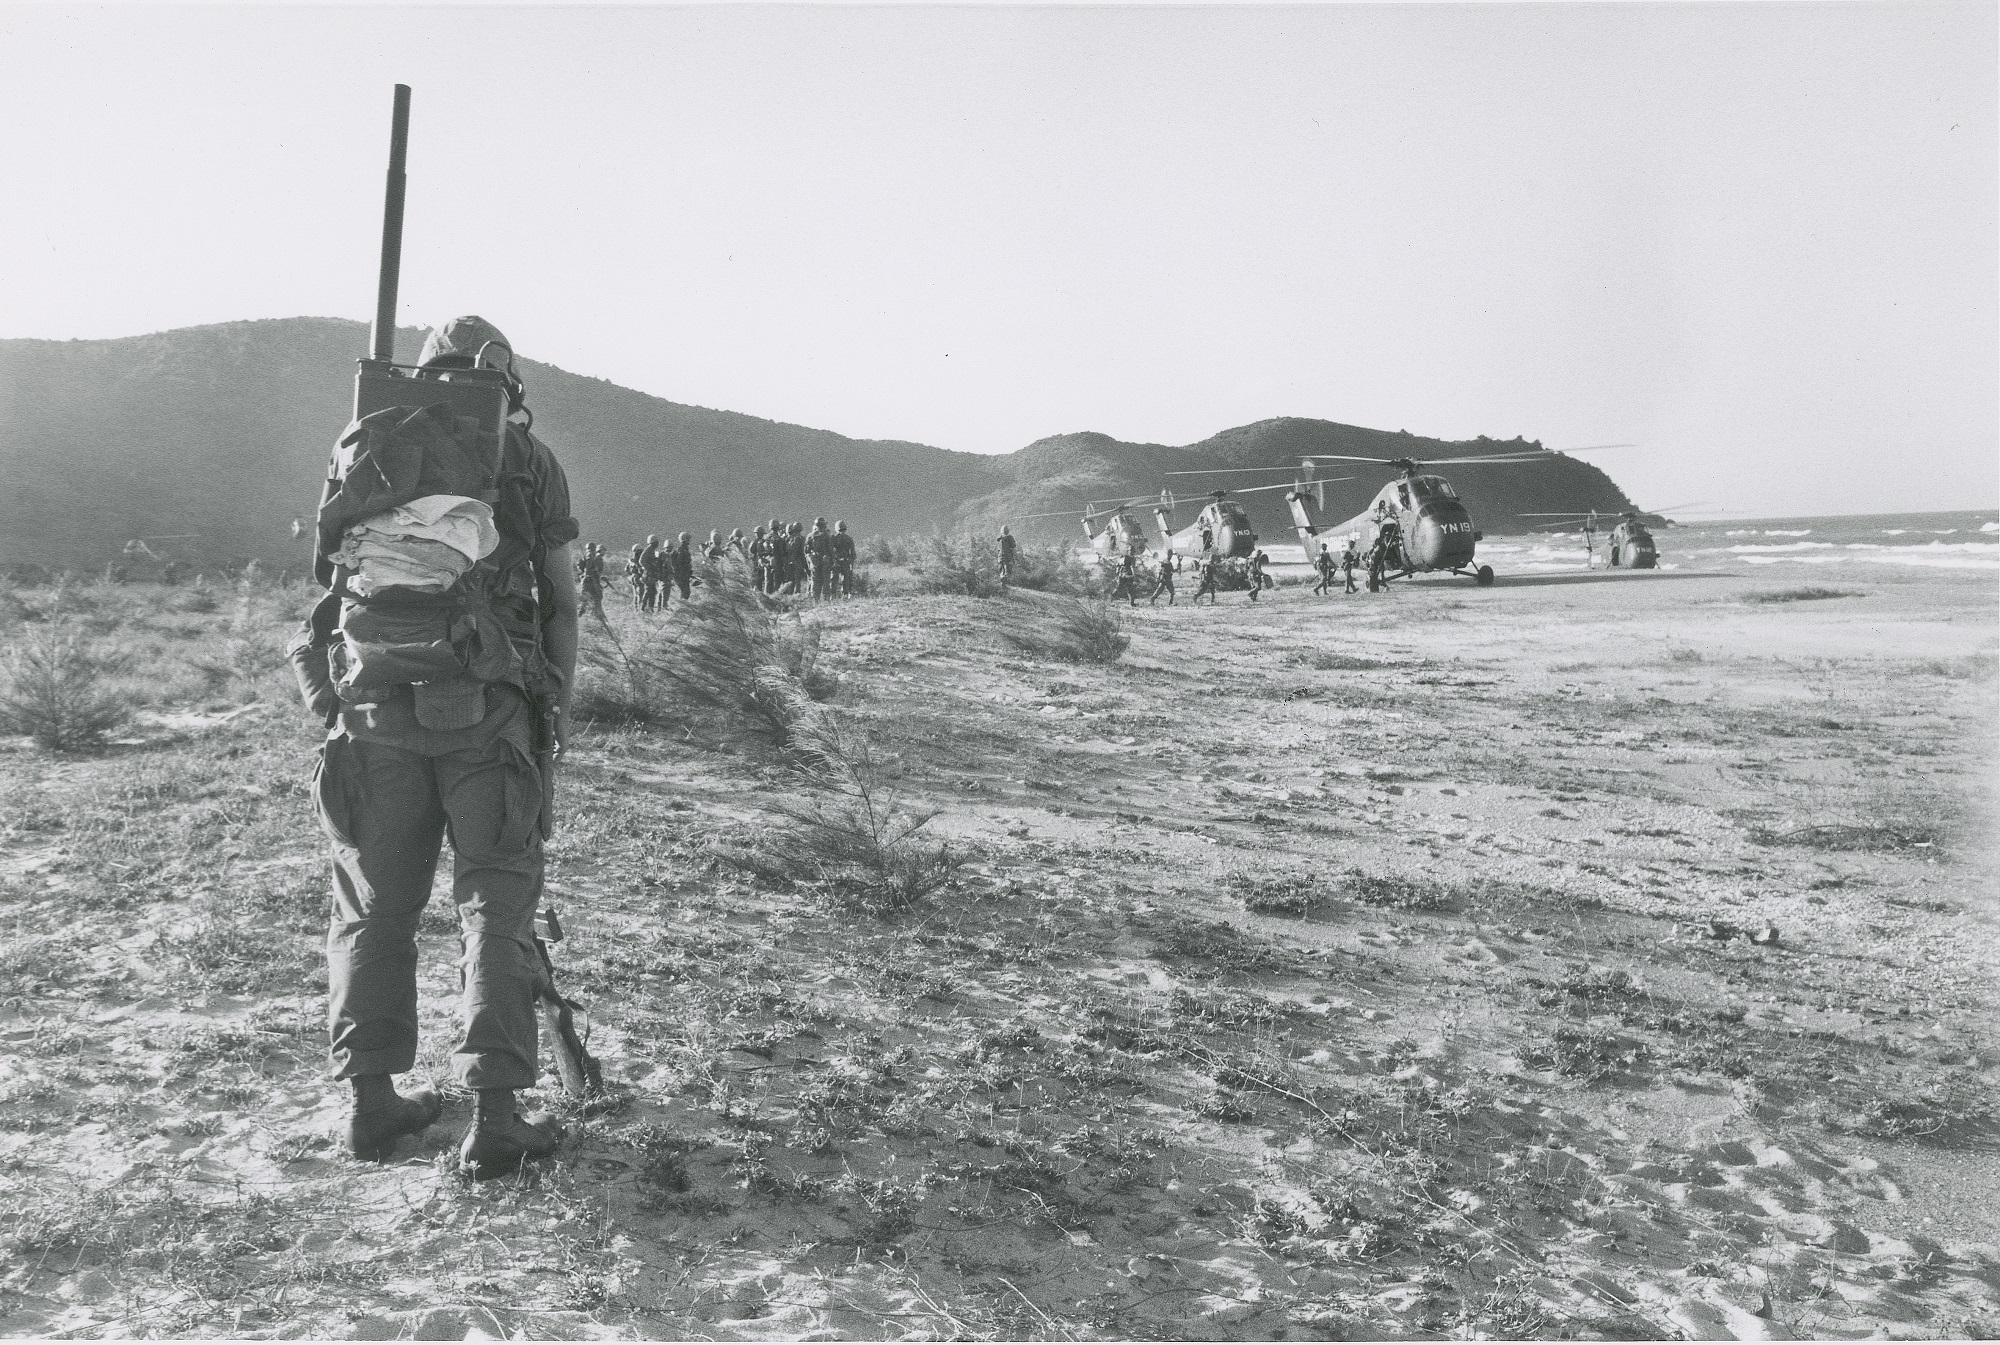 Marines wait to load helicopters, 1965. (Wisconsin Historical Images 115597)